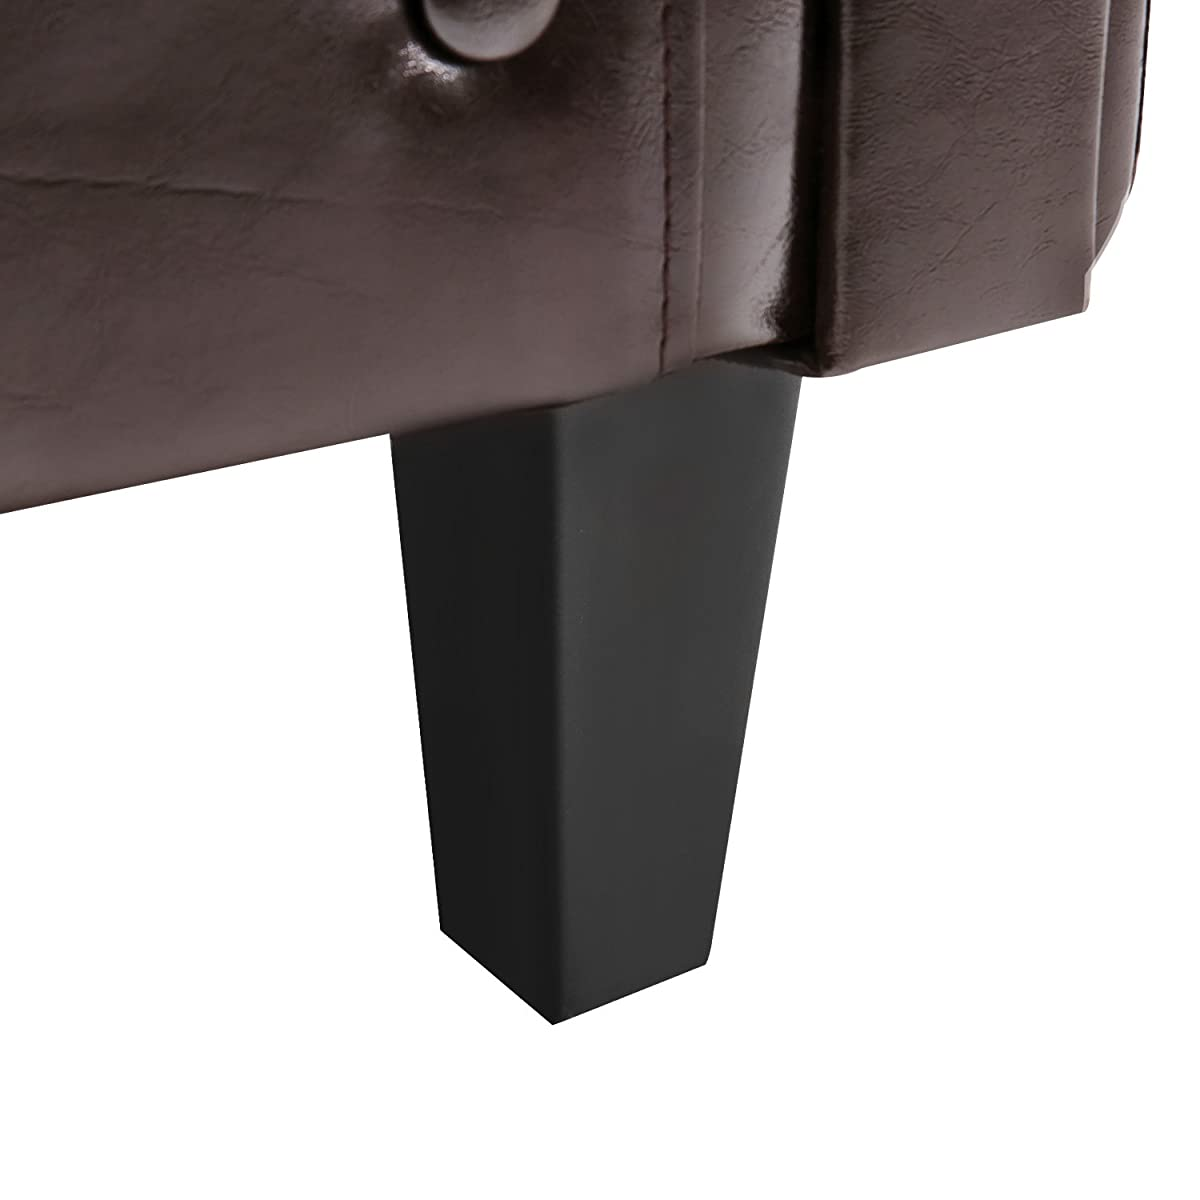 Harper&Bright Designs Armchair Modern Upholstered Living Room Club Chair with PU Leather/Ottoman/Cushion (Brown.)